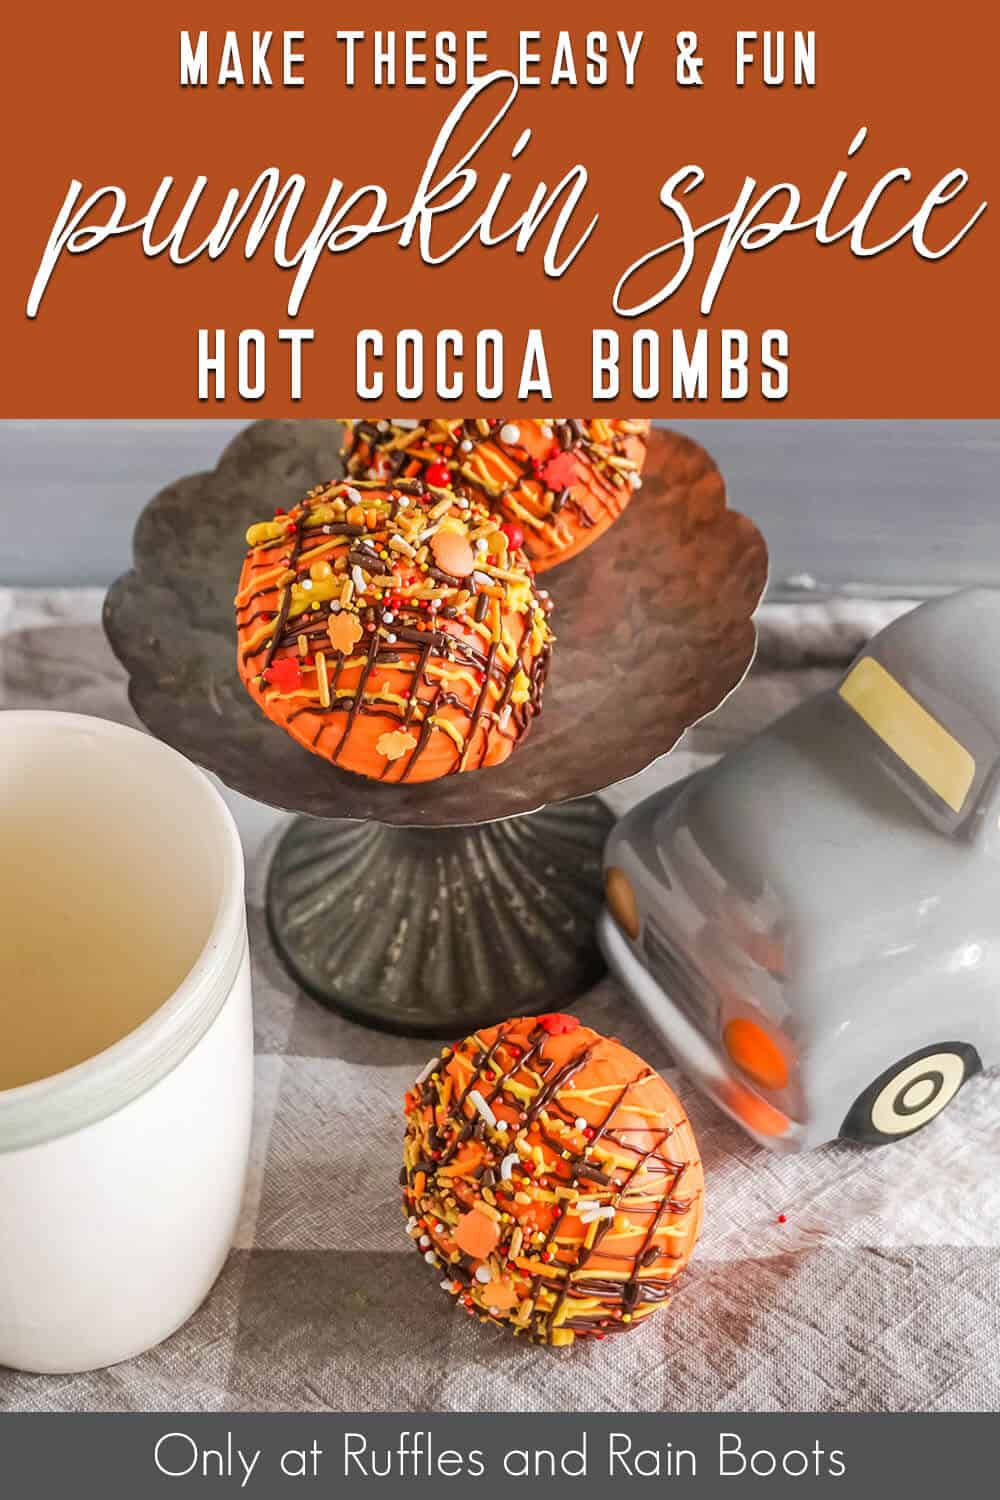 pumpkin hot chocolate bombs recipe with text which reads make these easy & fun pumpkin spice hot cocoa bombs